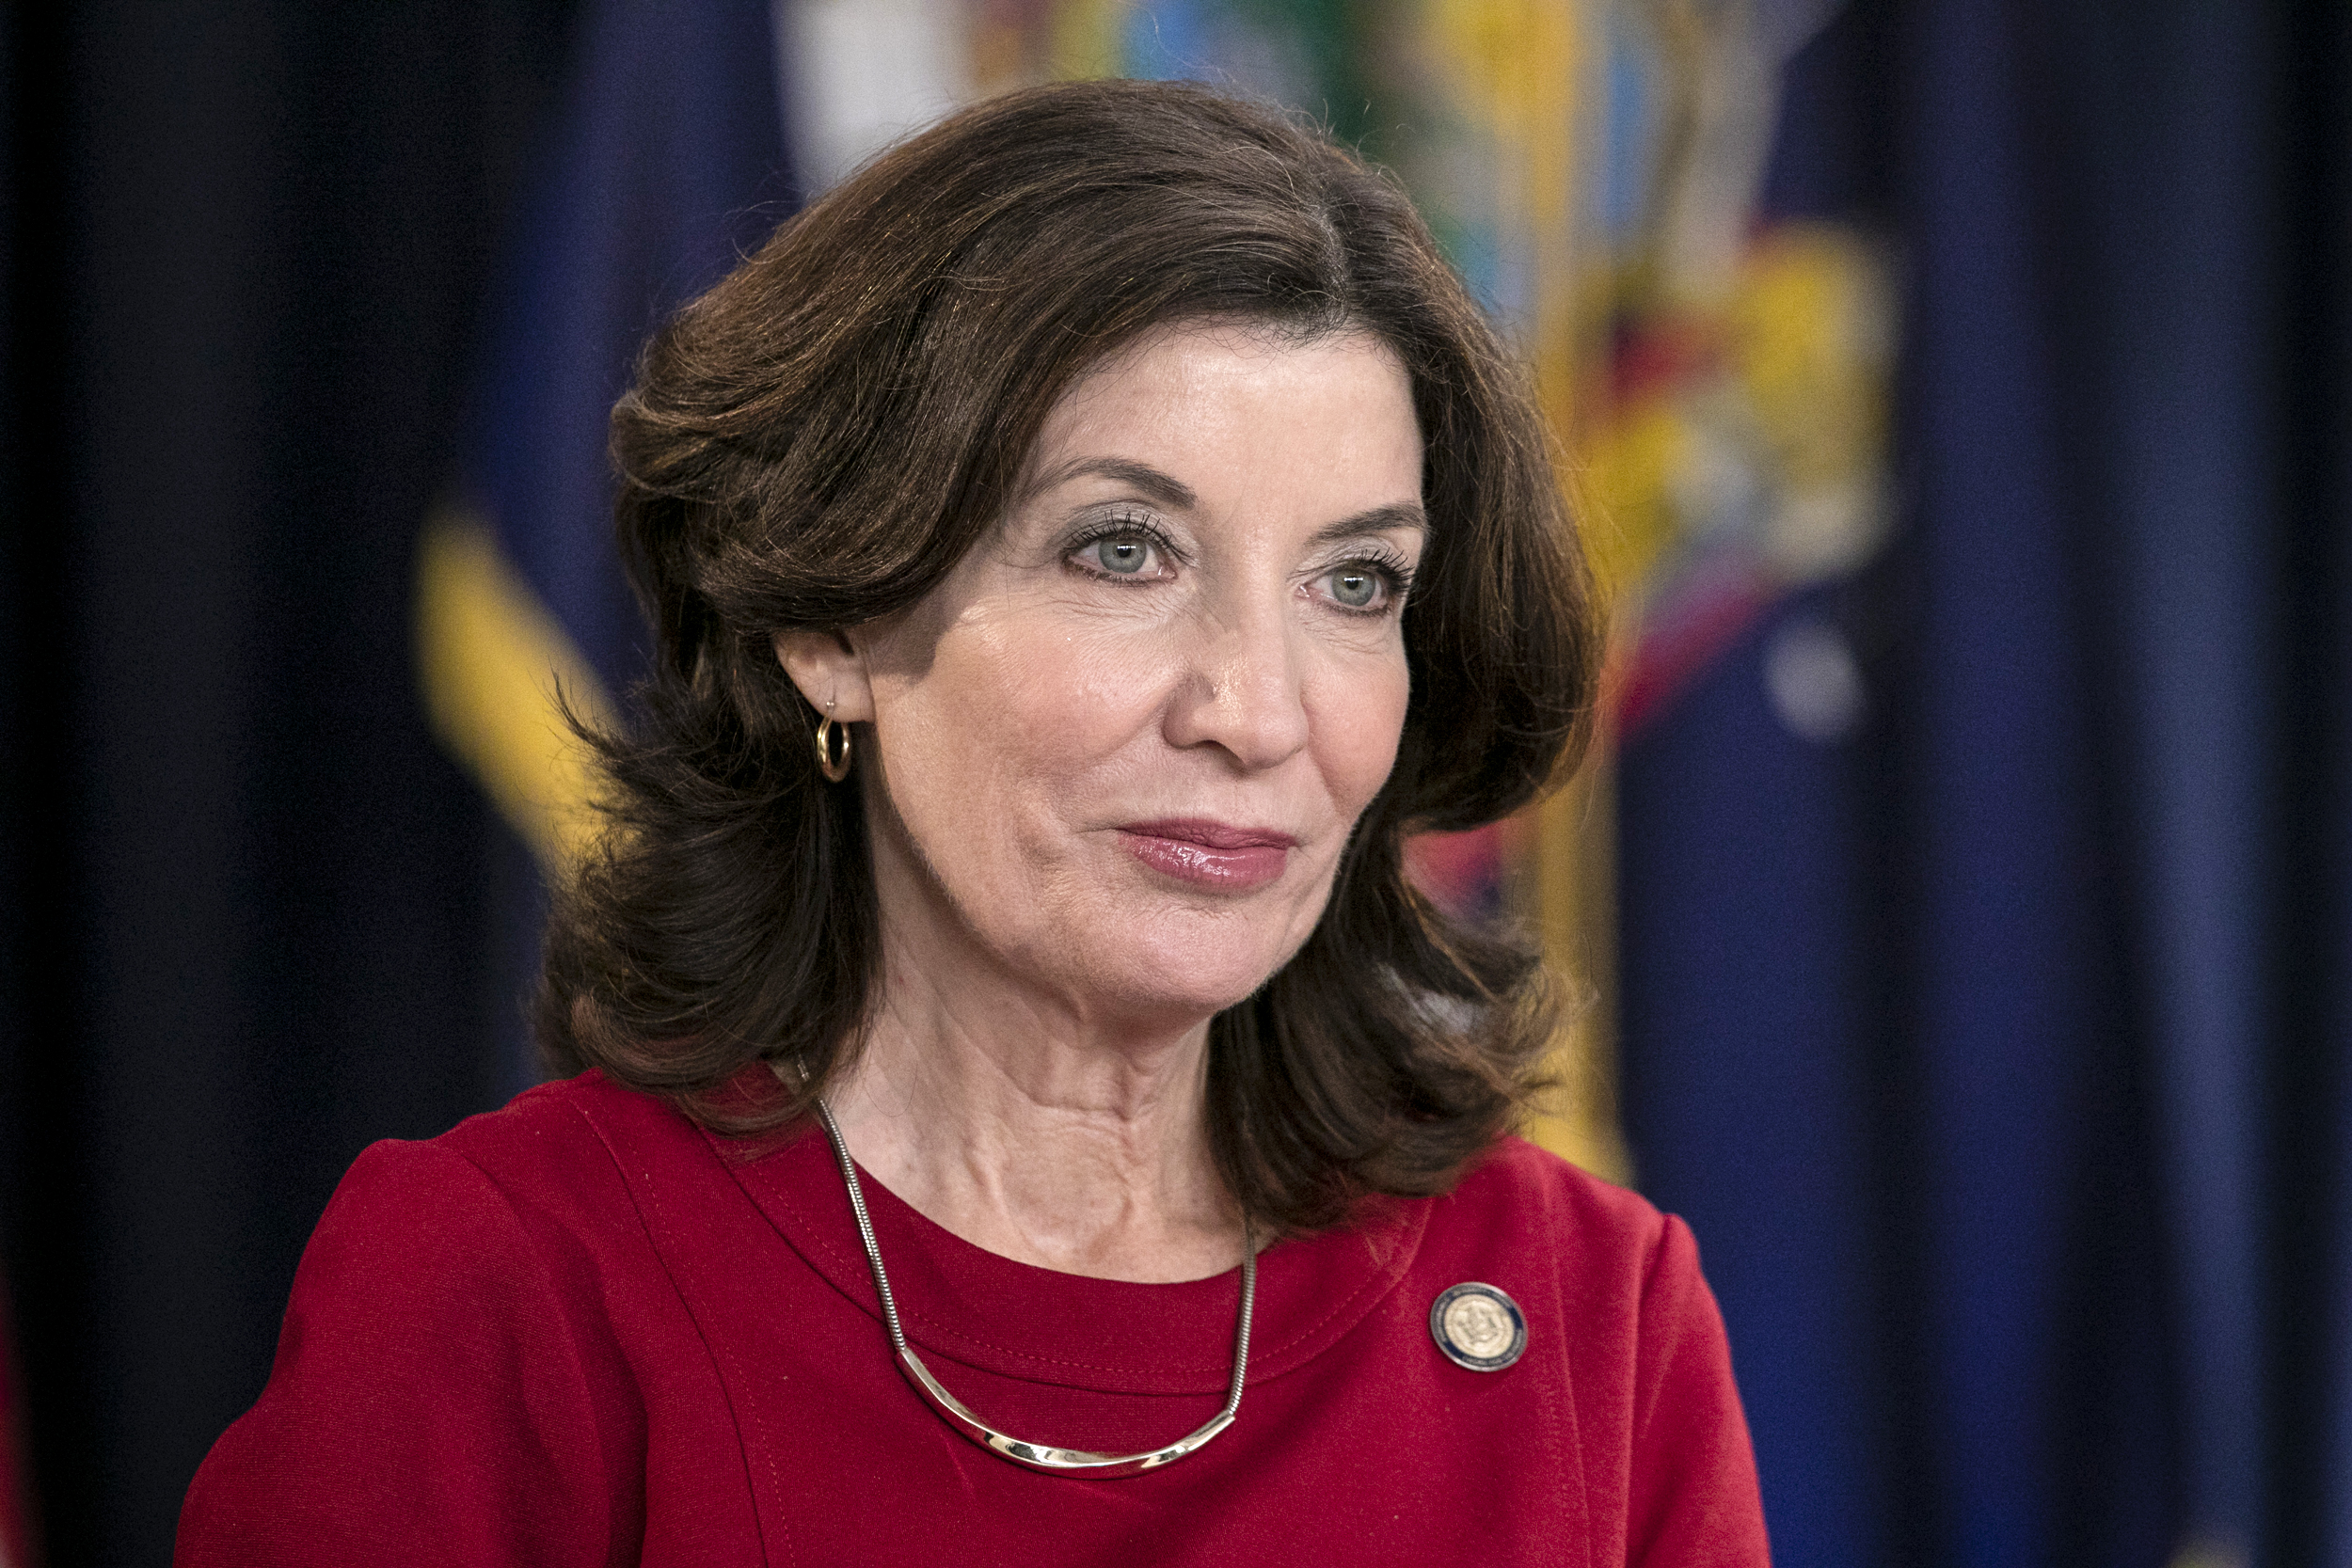 With Cuomo out, Kathy Hochul will become New York's first woman governor